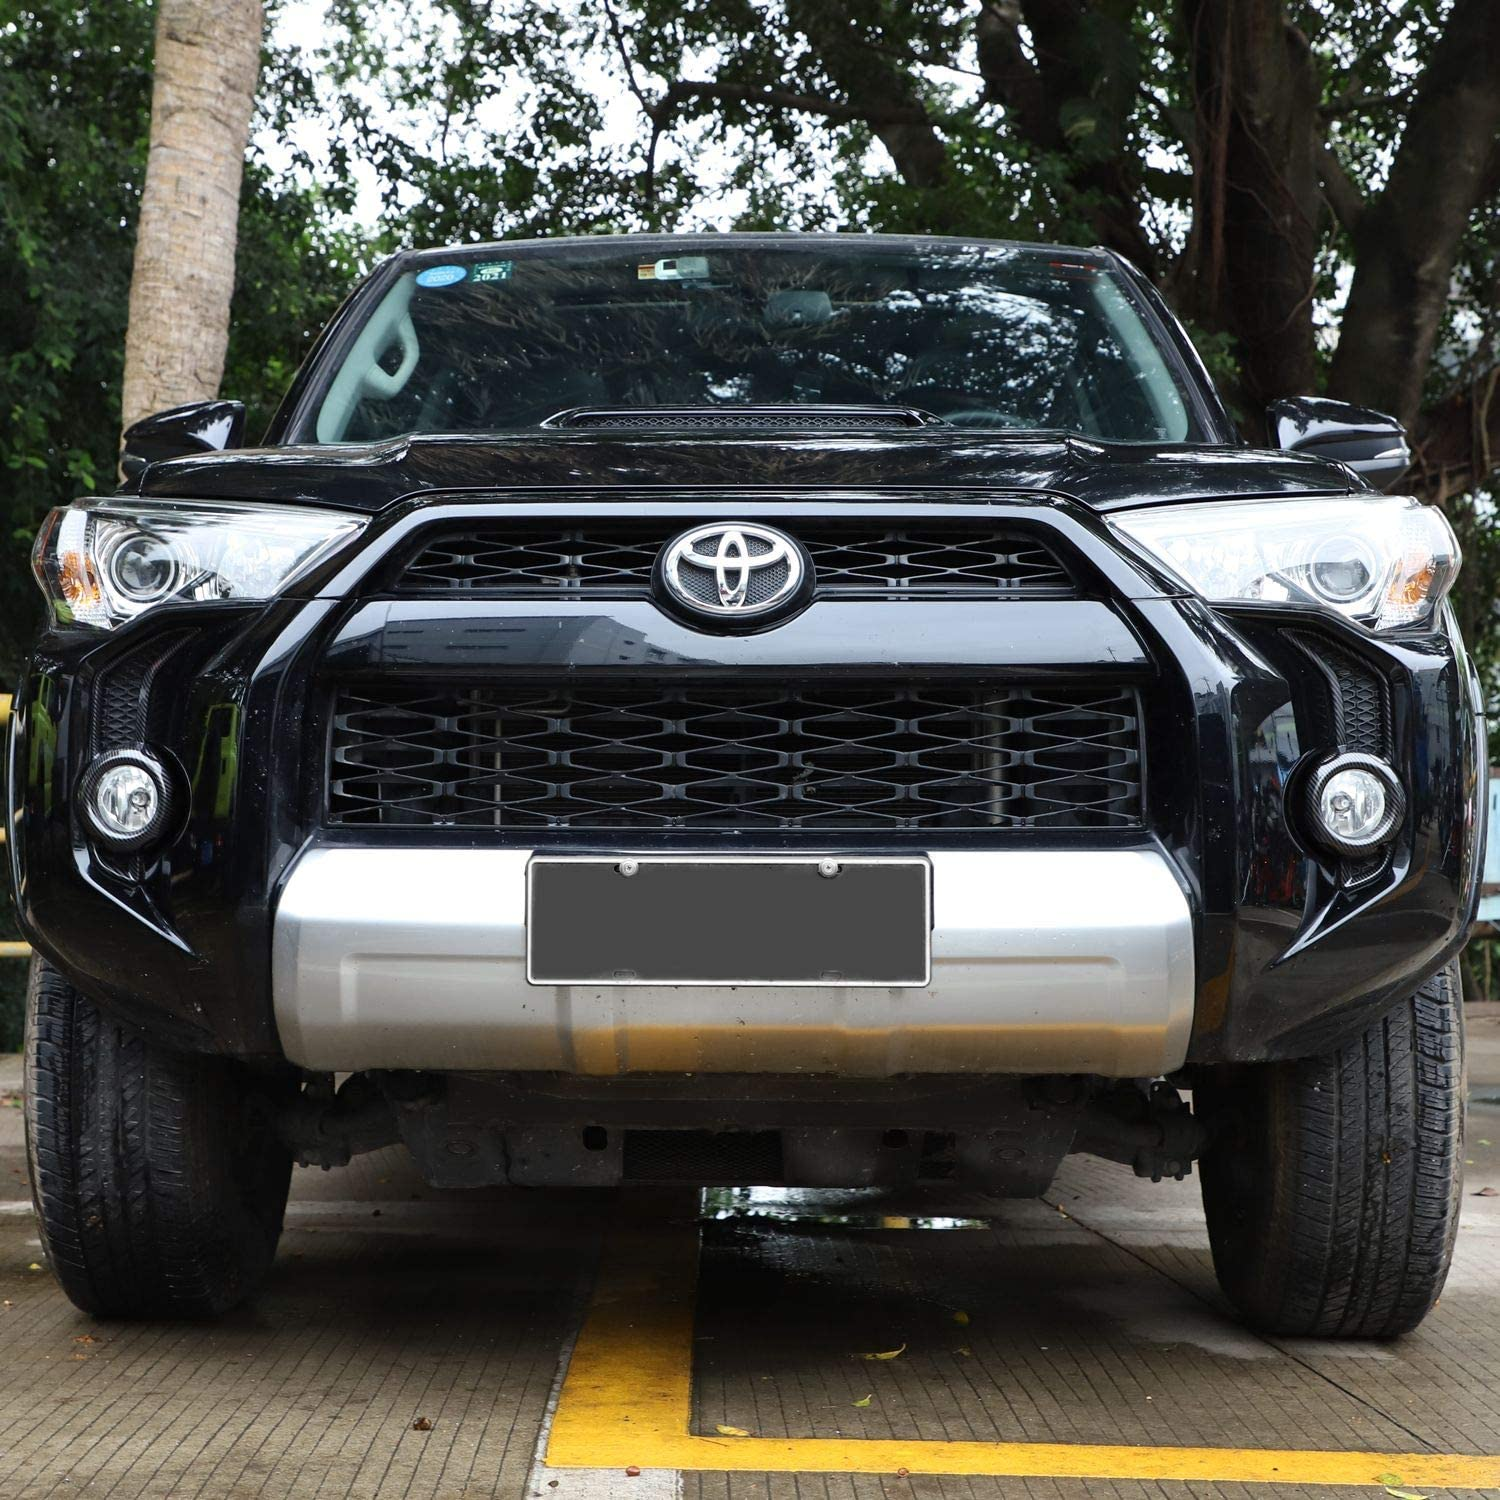 2pcs Voodonala for 4Runner ABS Carbon Fiber Fog Light Trim for 2010-2019 Toyota 4Runner SR5 TRD Pro